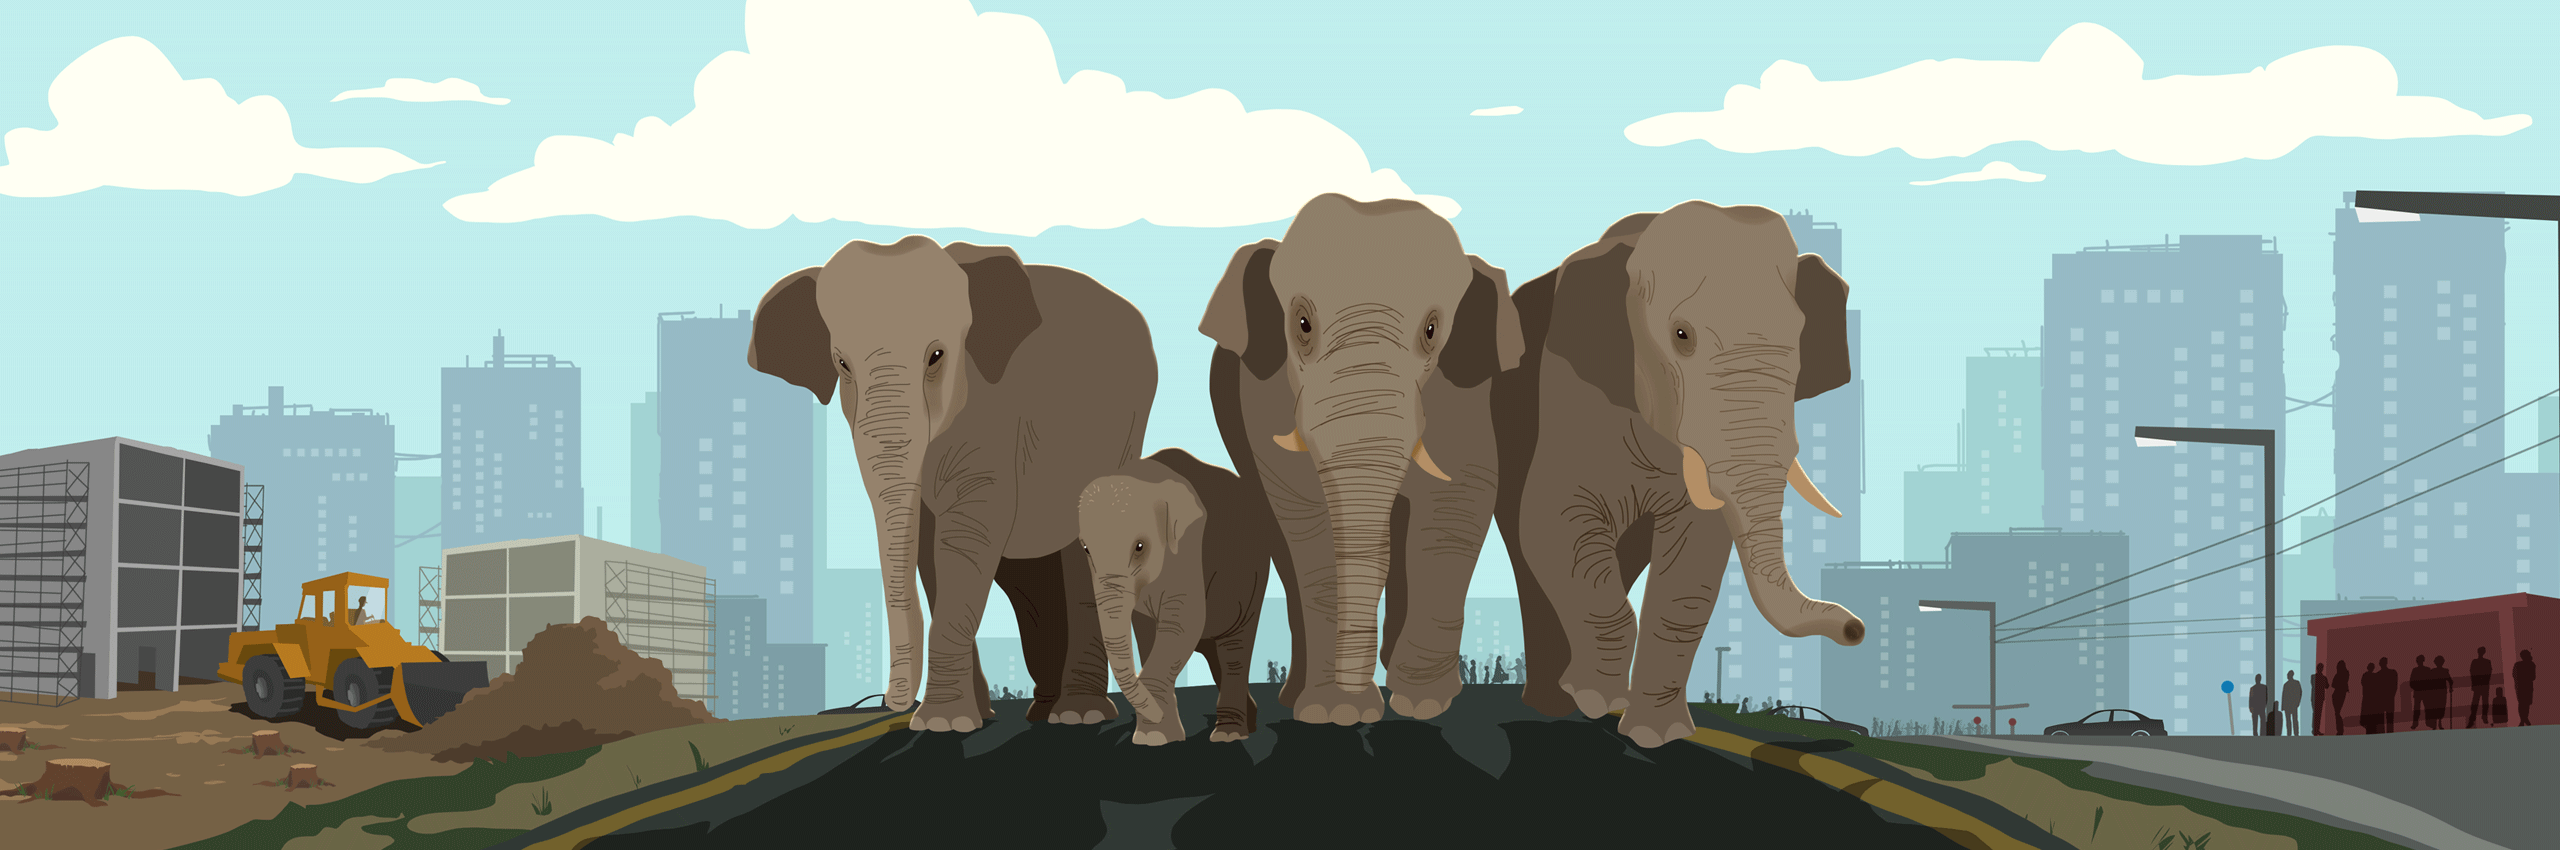 Illustration of three elephants standing in a city